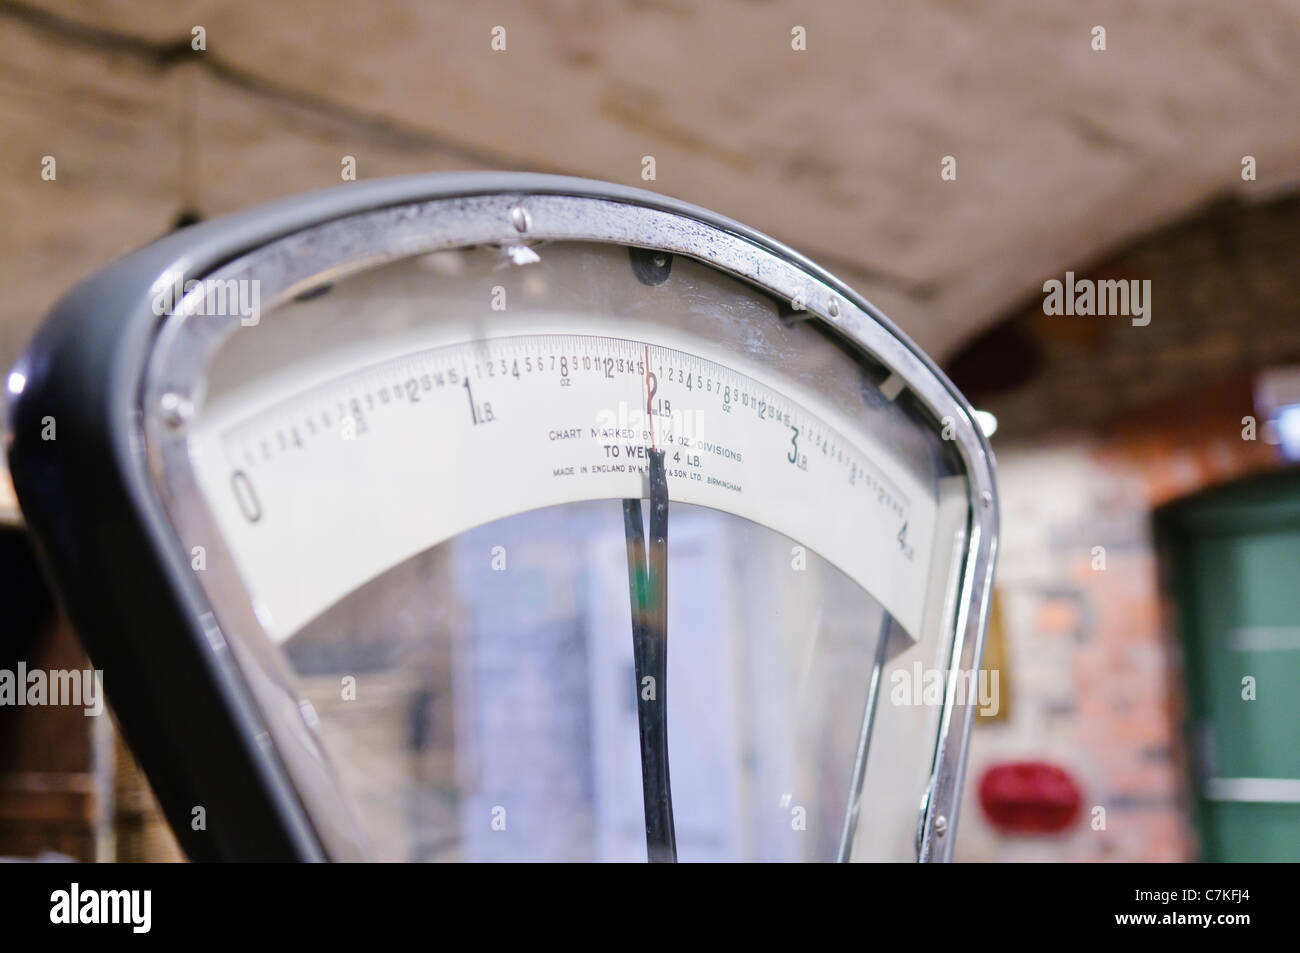 Old fashioned British shop scales Photo Stock